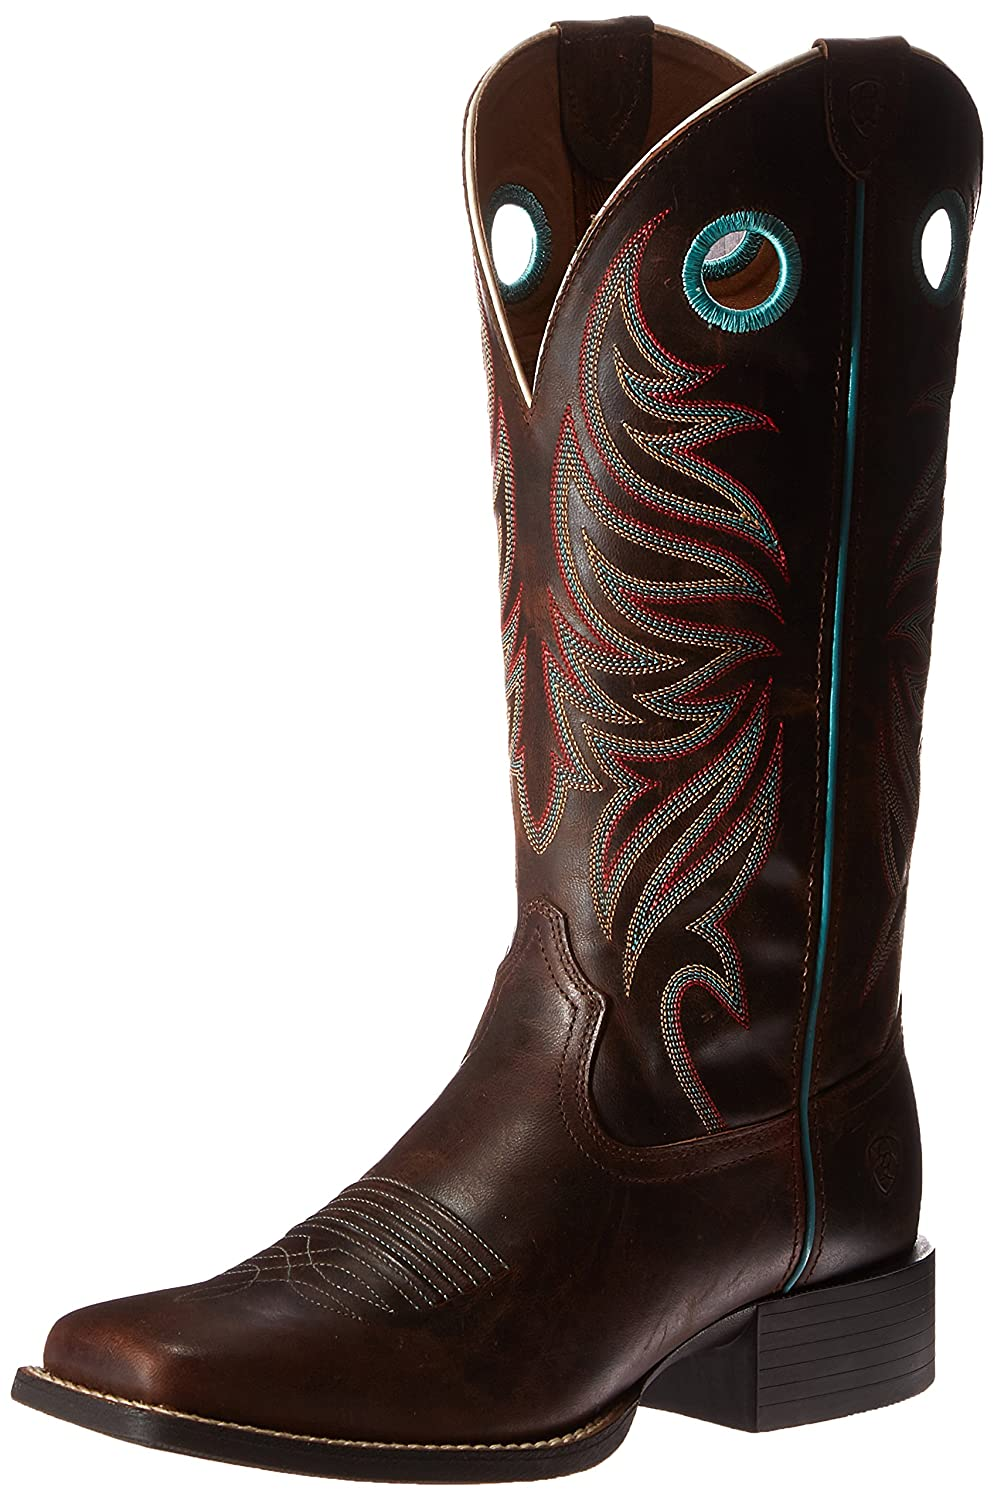 Ariat Women's Round up Ryder Western Cowboy Boot B013J24F42 7.5 B(M) US|Sassy Brown